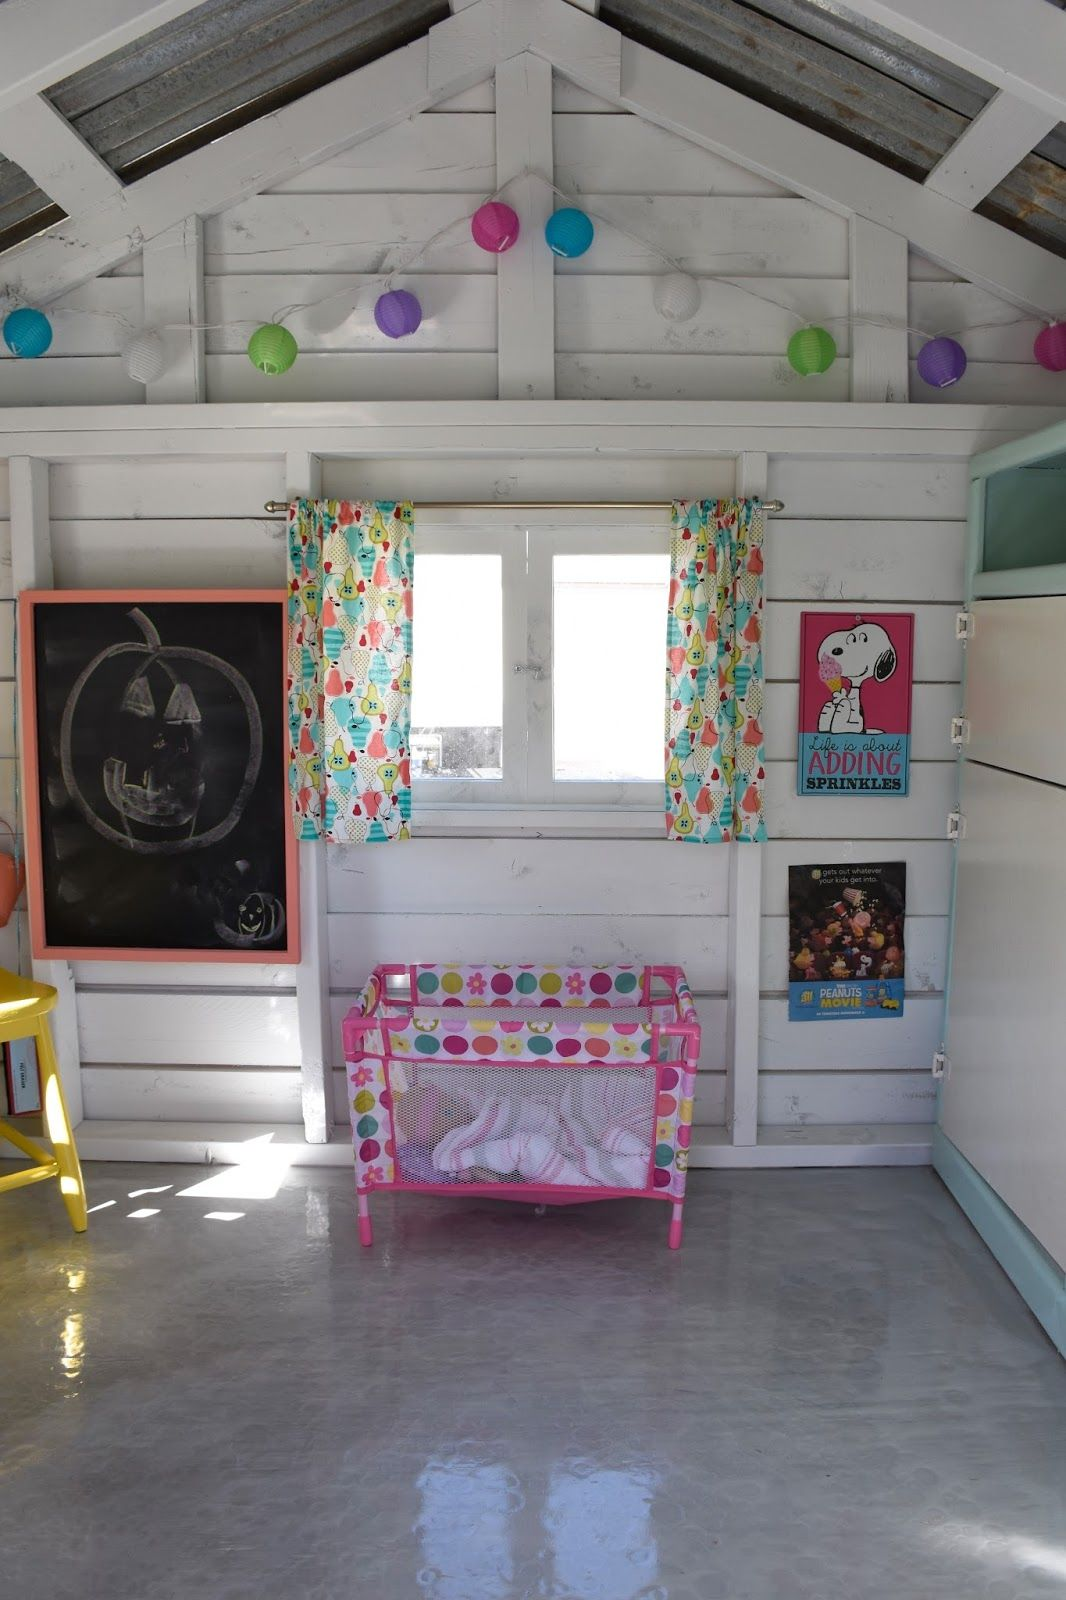 Interior ideas  lifestyle blog where  share bits and pieces about our daily life my personal also outdoor playhouse decorating kids fashion diy rh pinterest